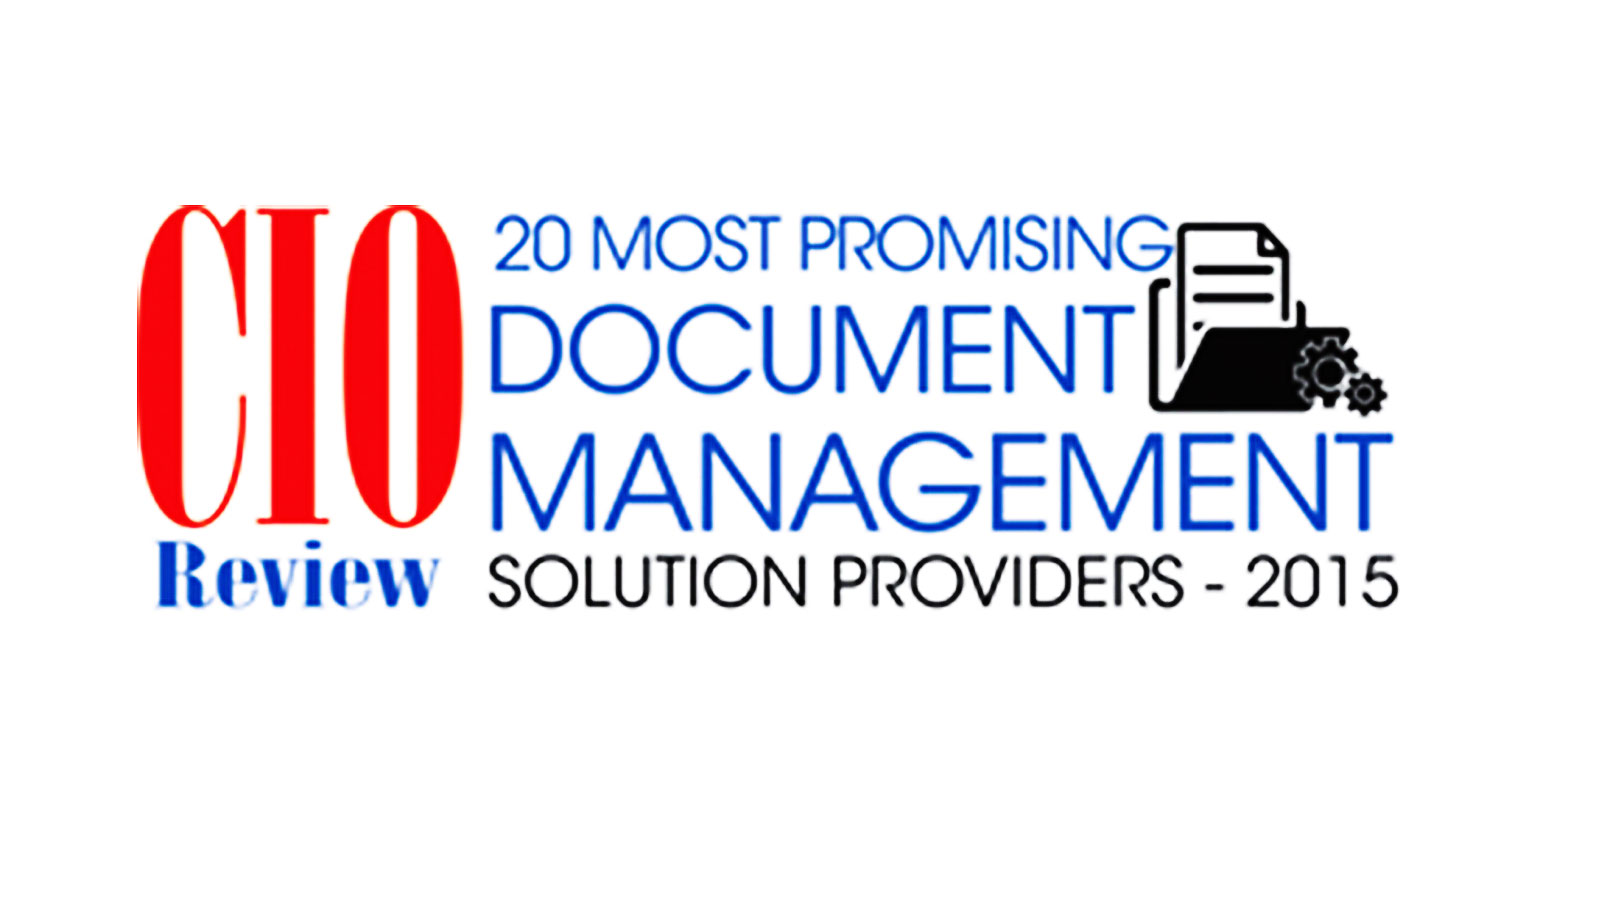 CIOReview – Asite achieves award for 20 most promising document management provider solutions for 2015